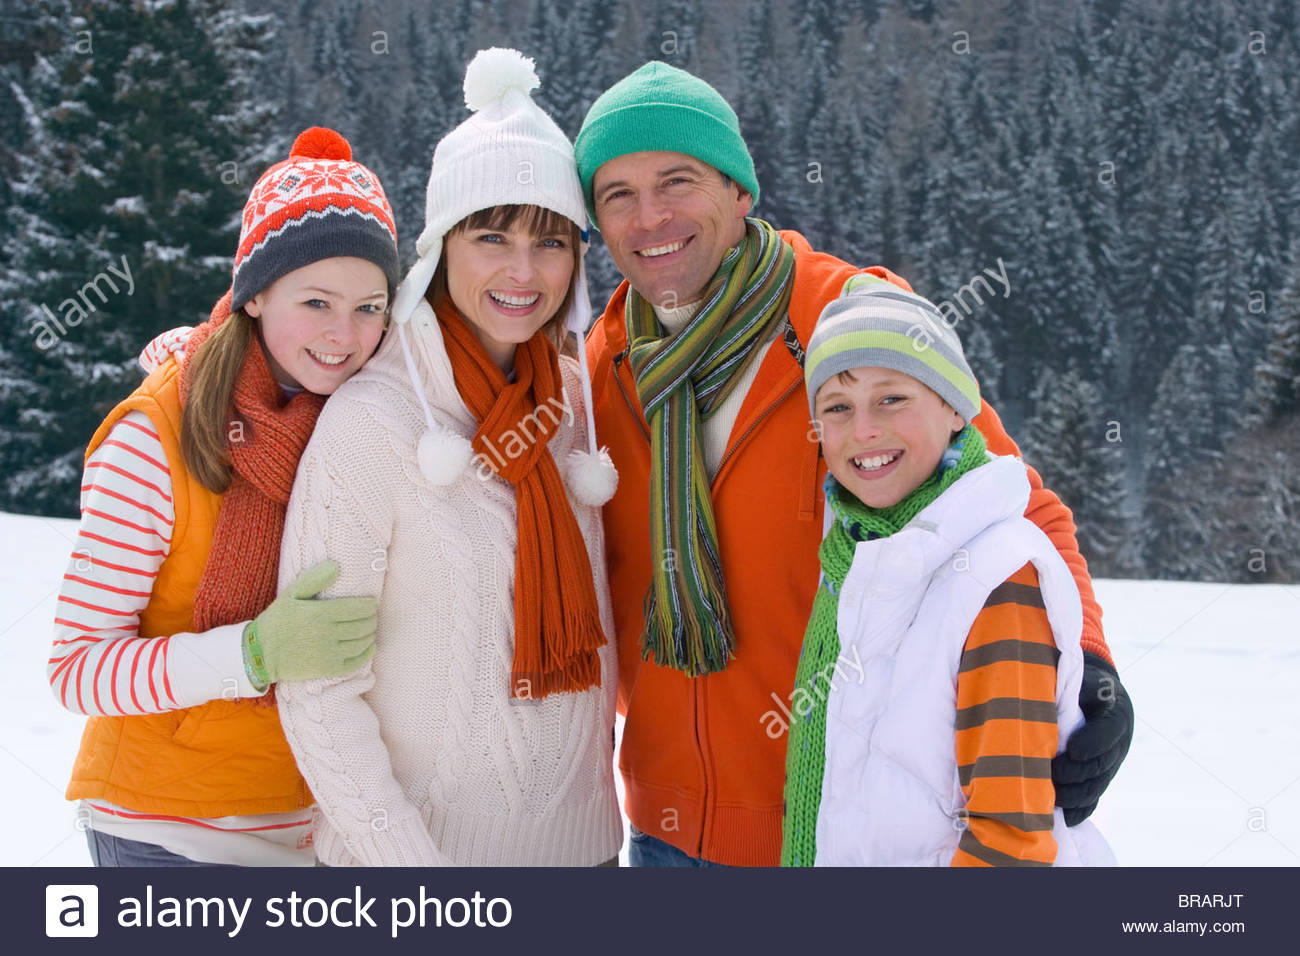 Family in caps and scarves standing together in snow - Stock Image